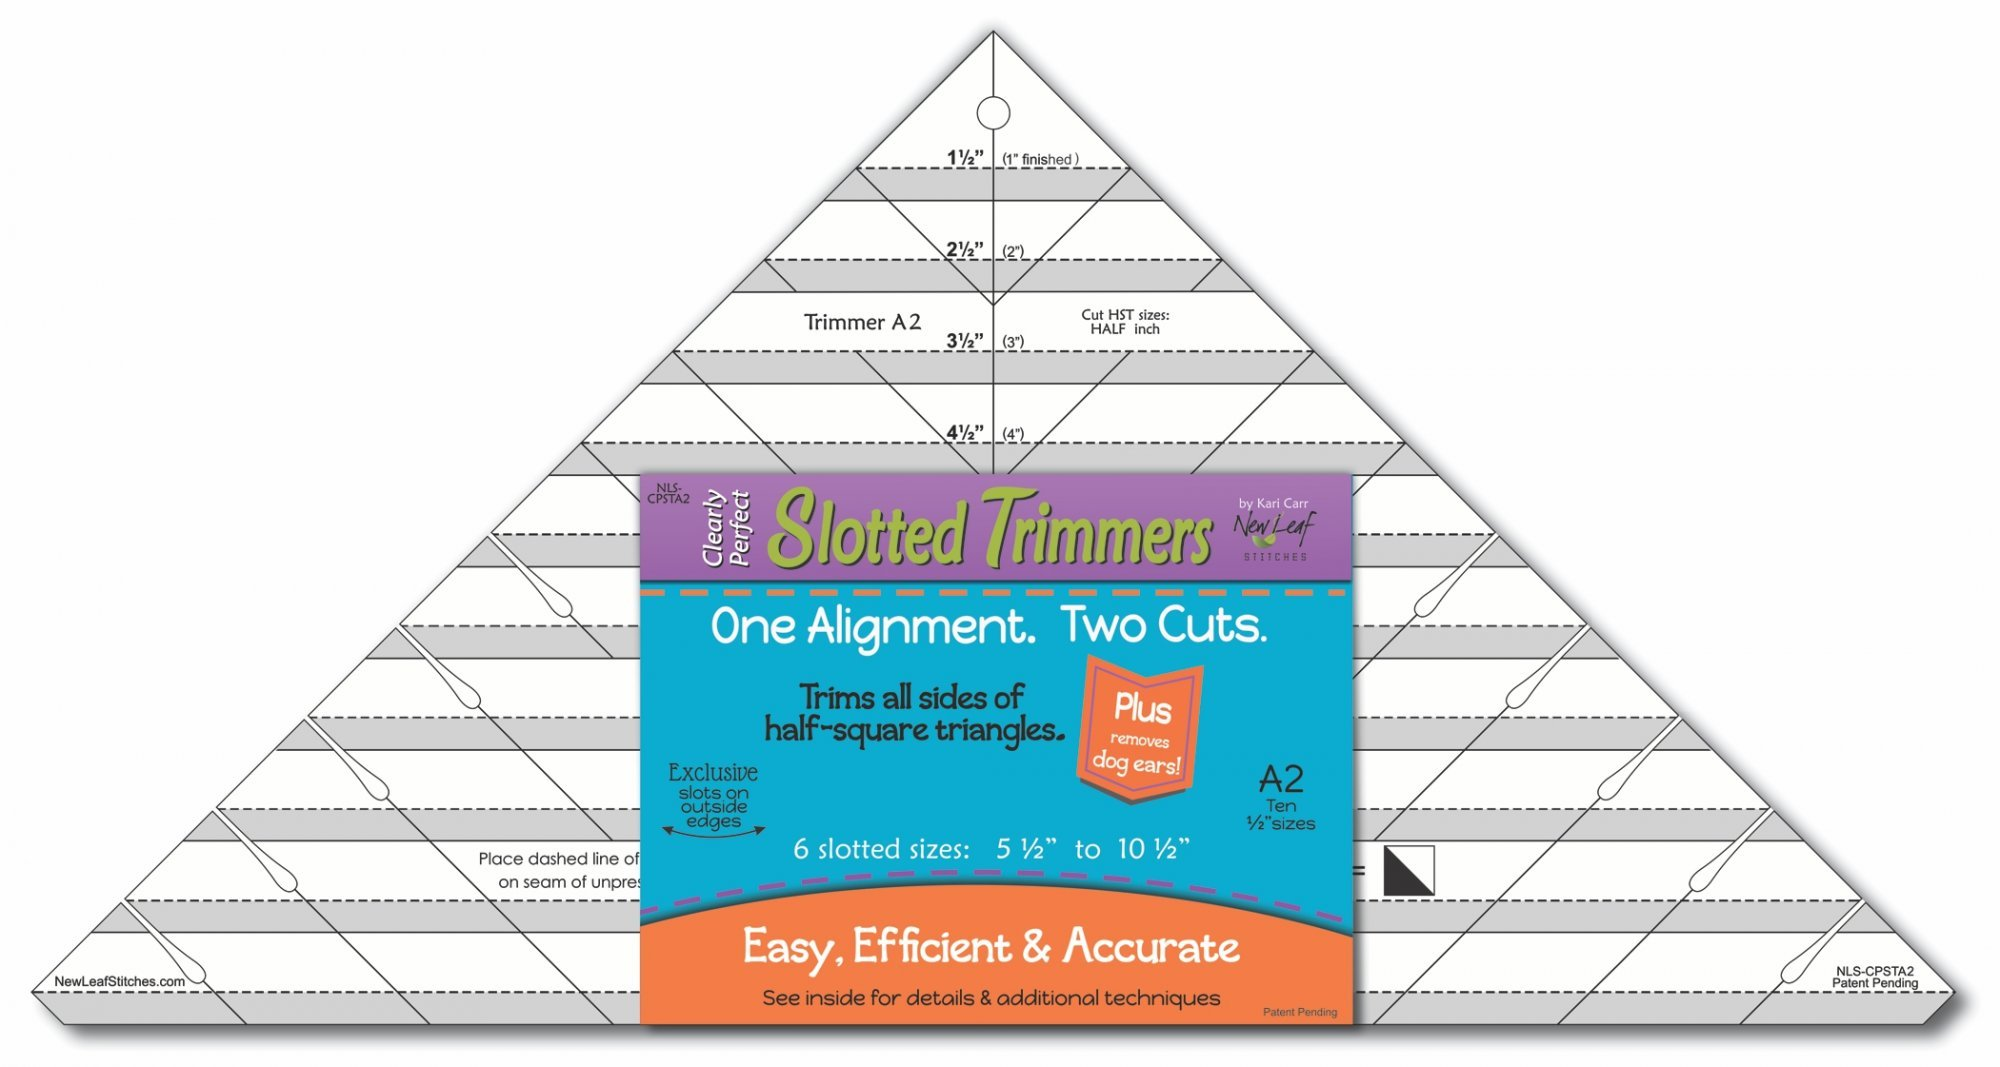 Clearly Perfect Slotted Trimmer A2